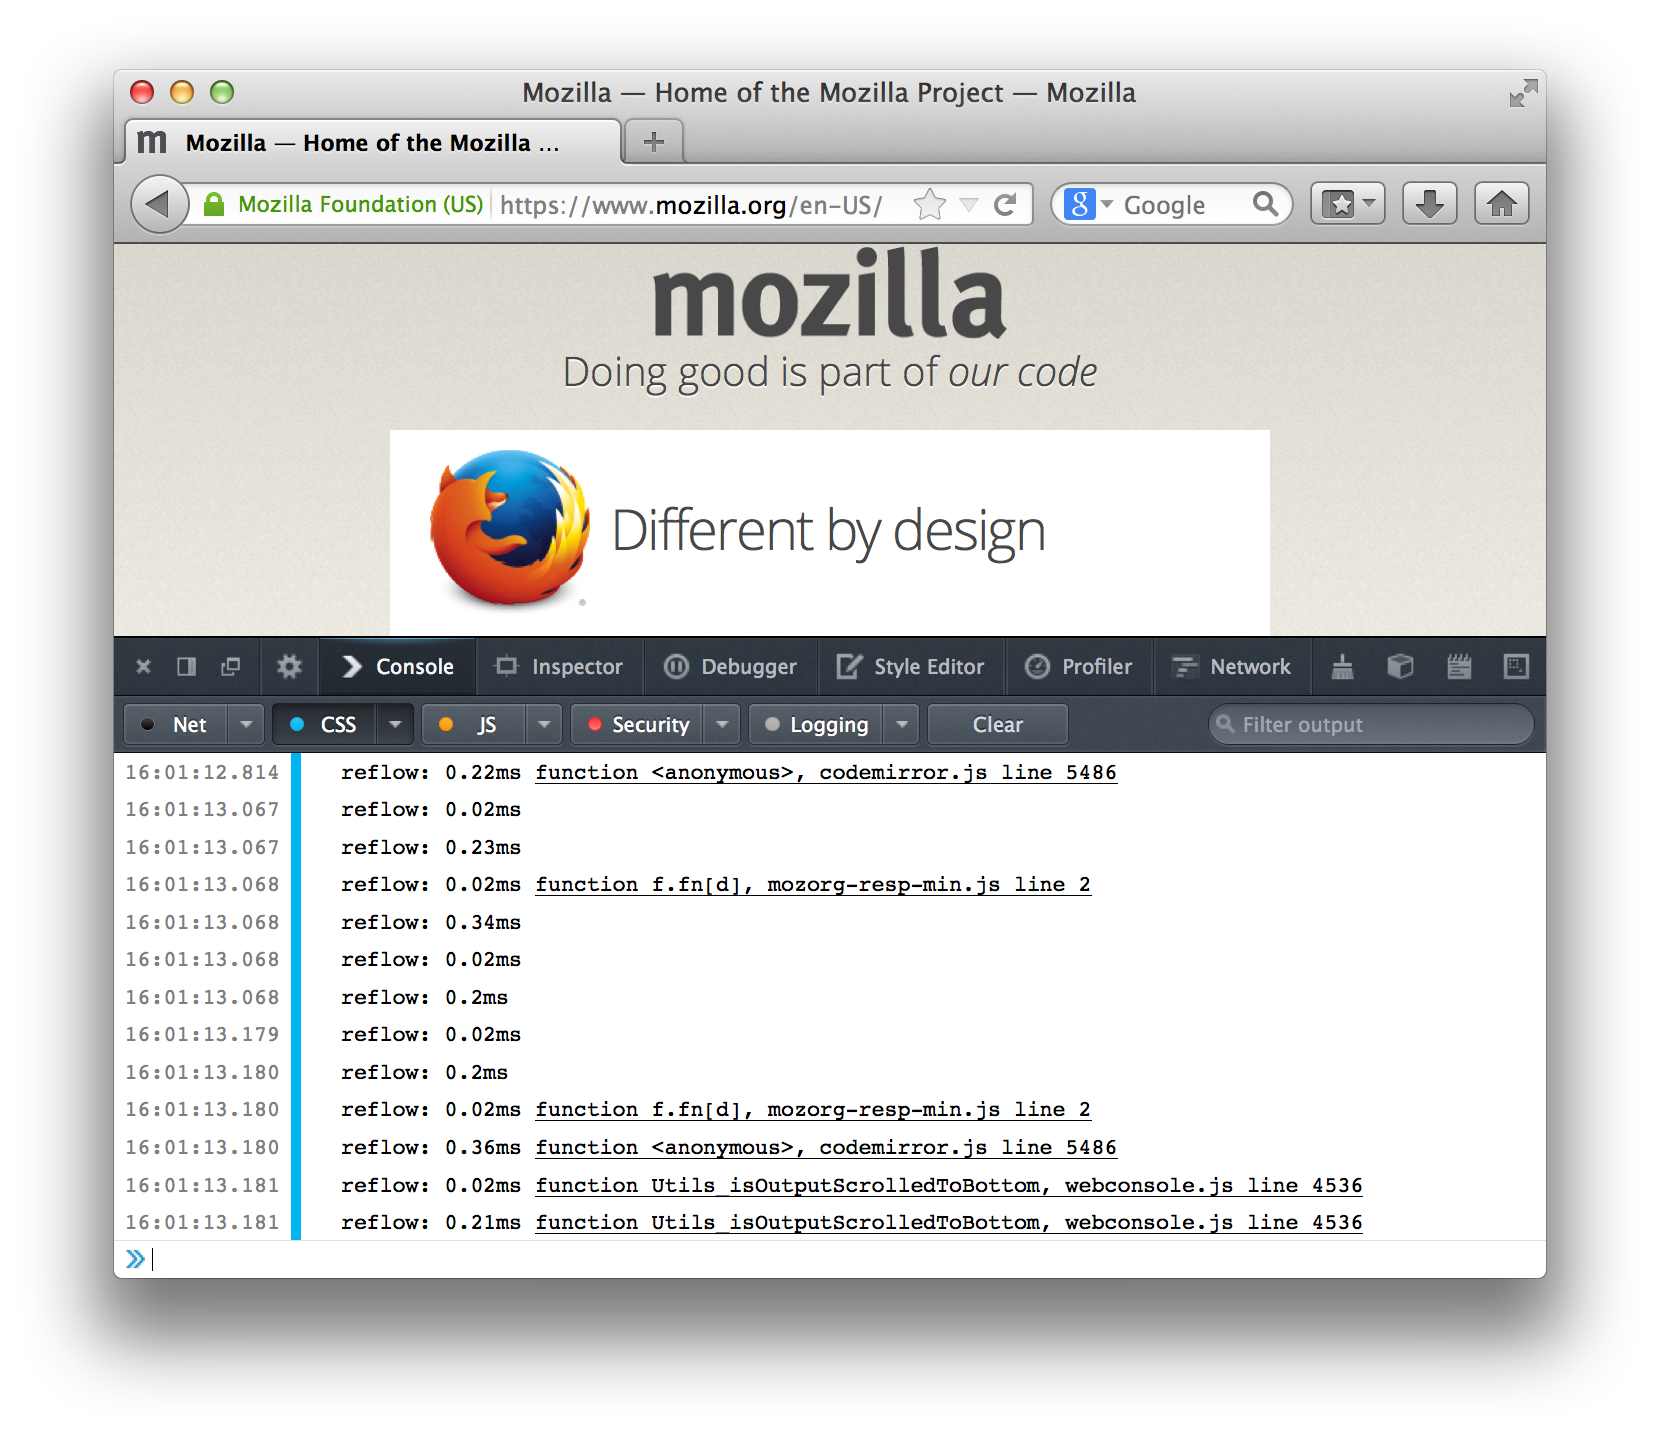 Firefox Developer Tools: Episode 27 - Edit as HTML